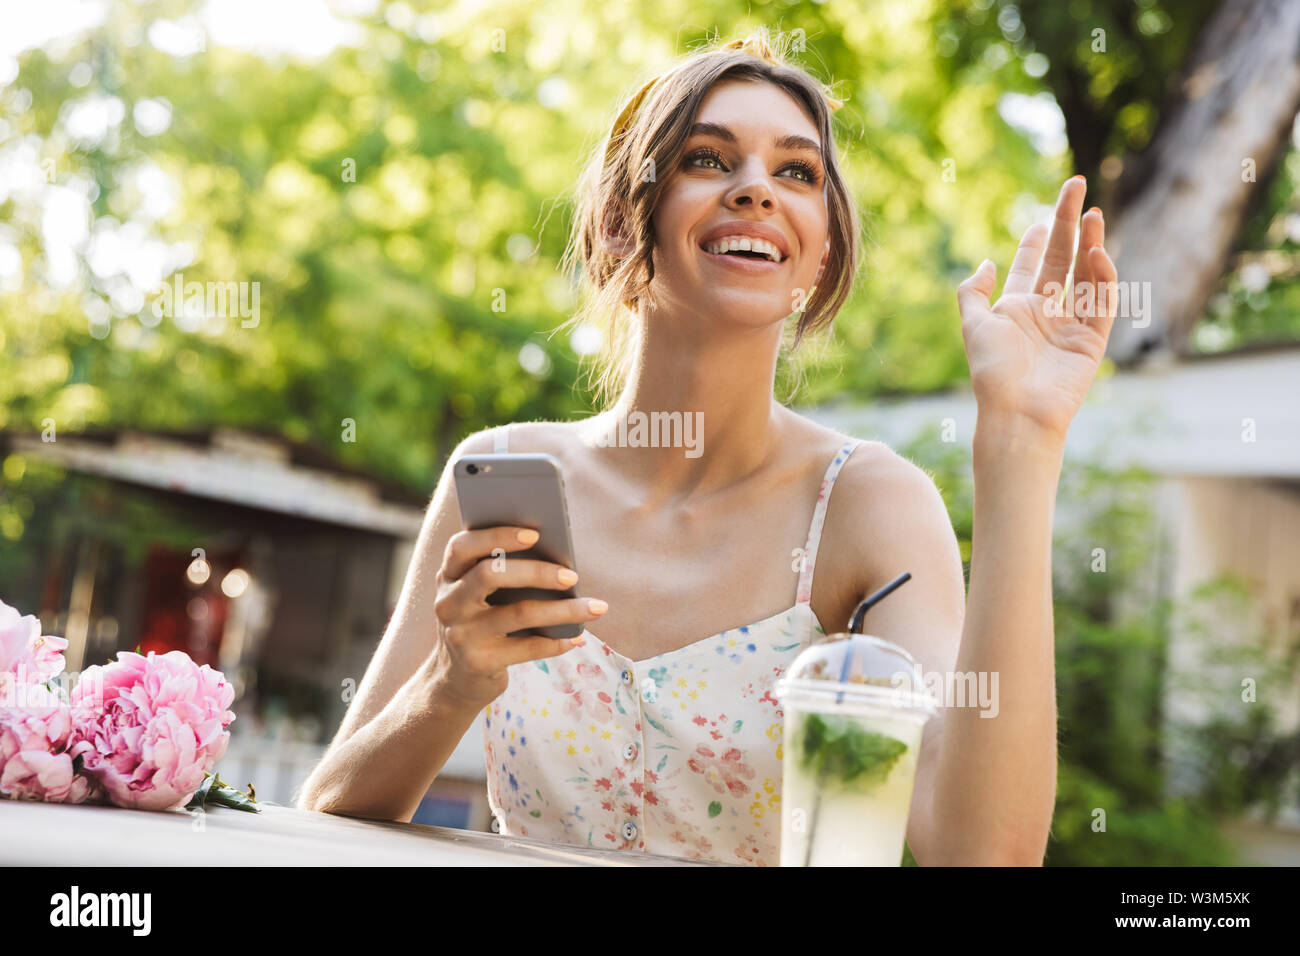 Image of a beautiful cheery smiling young amazing woman sitting at the table with flowers in green park using mobile phone waving to friend. - Stock Image